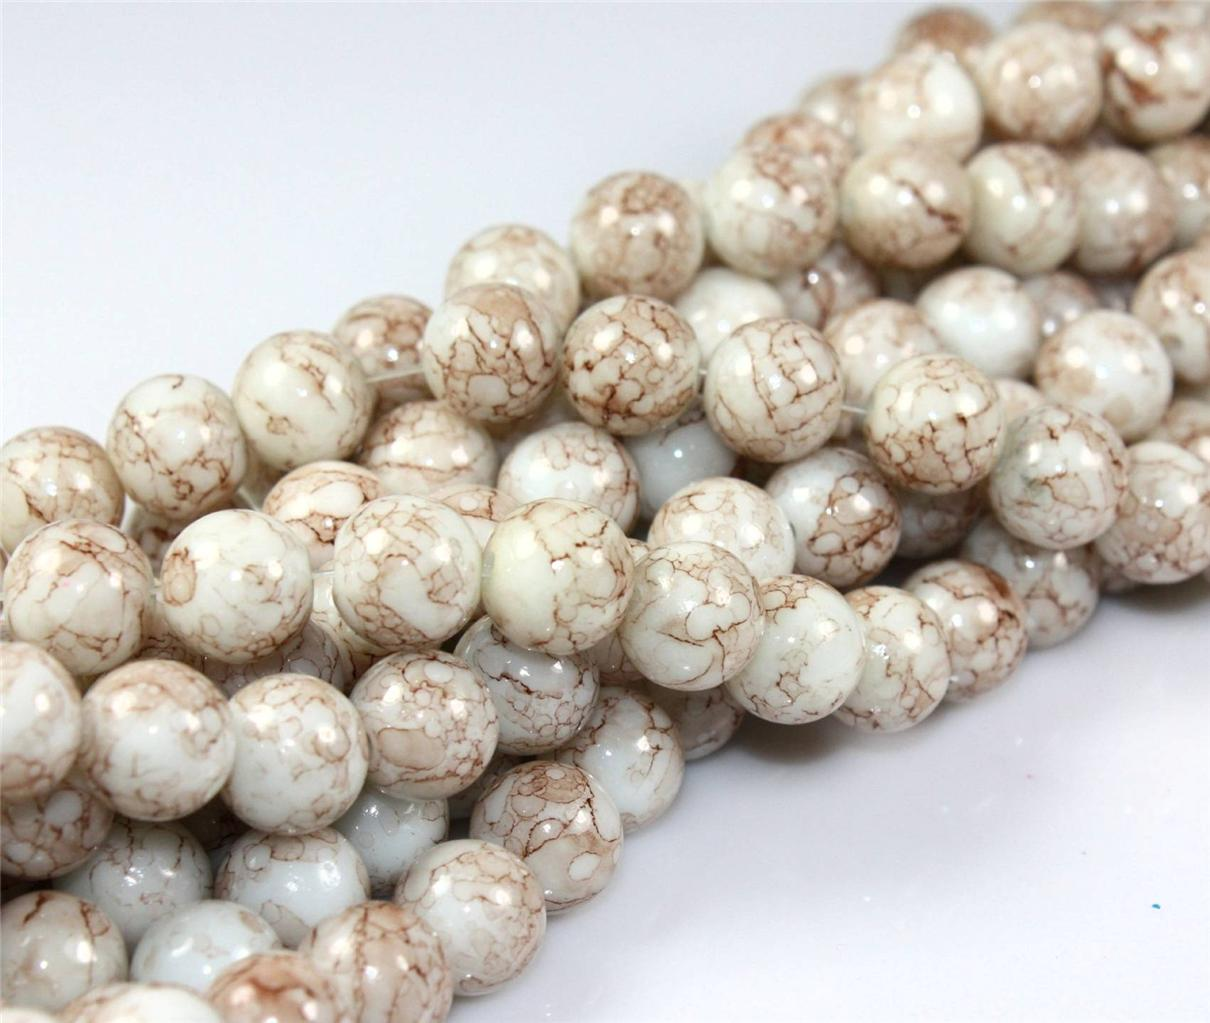 200x-6mm-100x-8mm-50x-10mm-MARBLE-EFFECT-GLASS-DRAWBENCH-BEADS-COLOUR-CHOICE